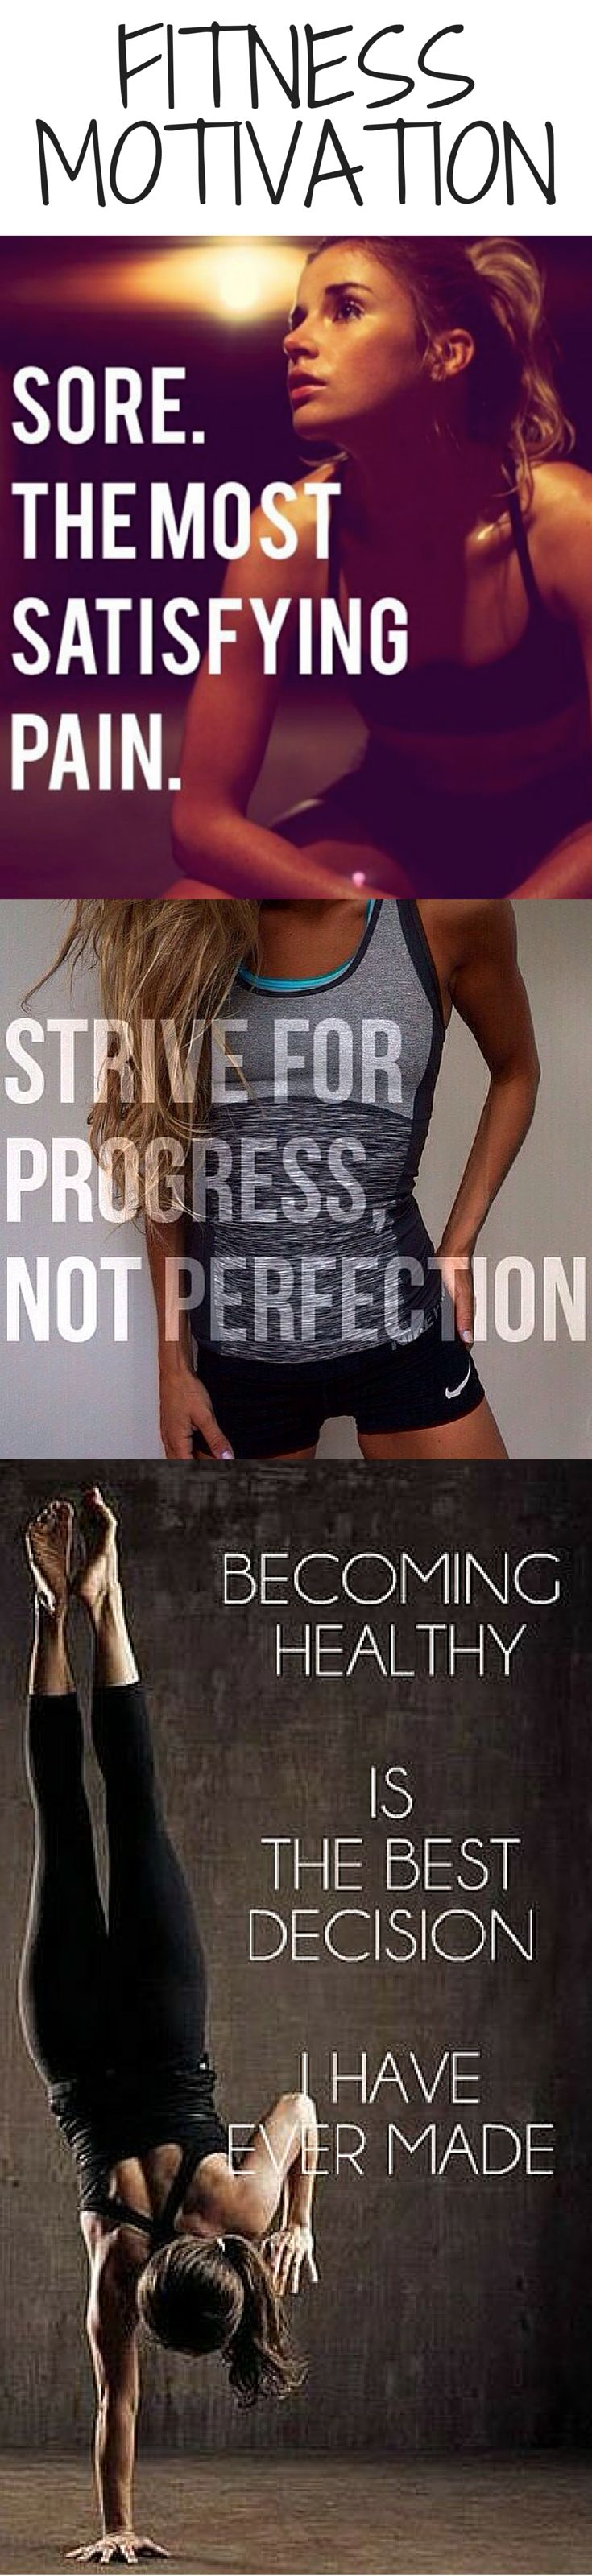 15 Motivational Fitness Quotes